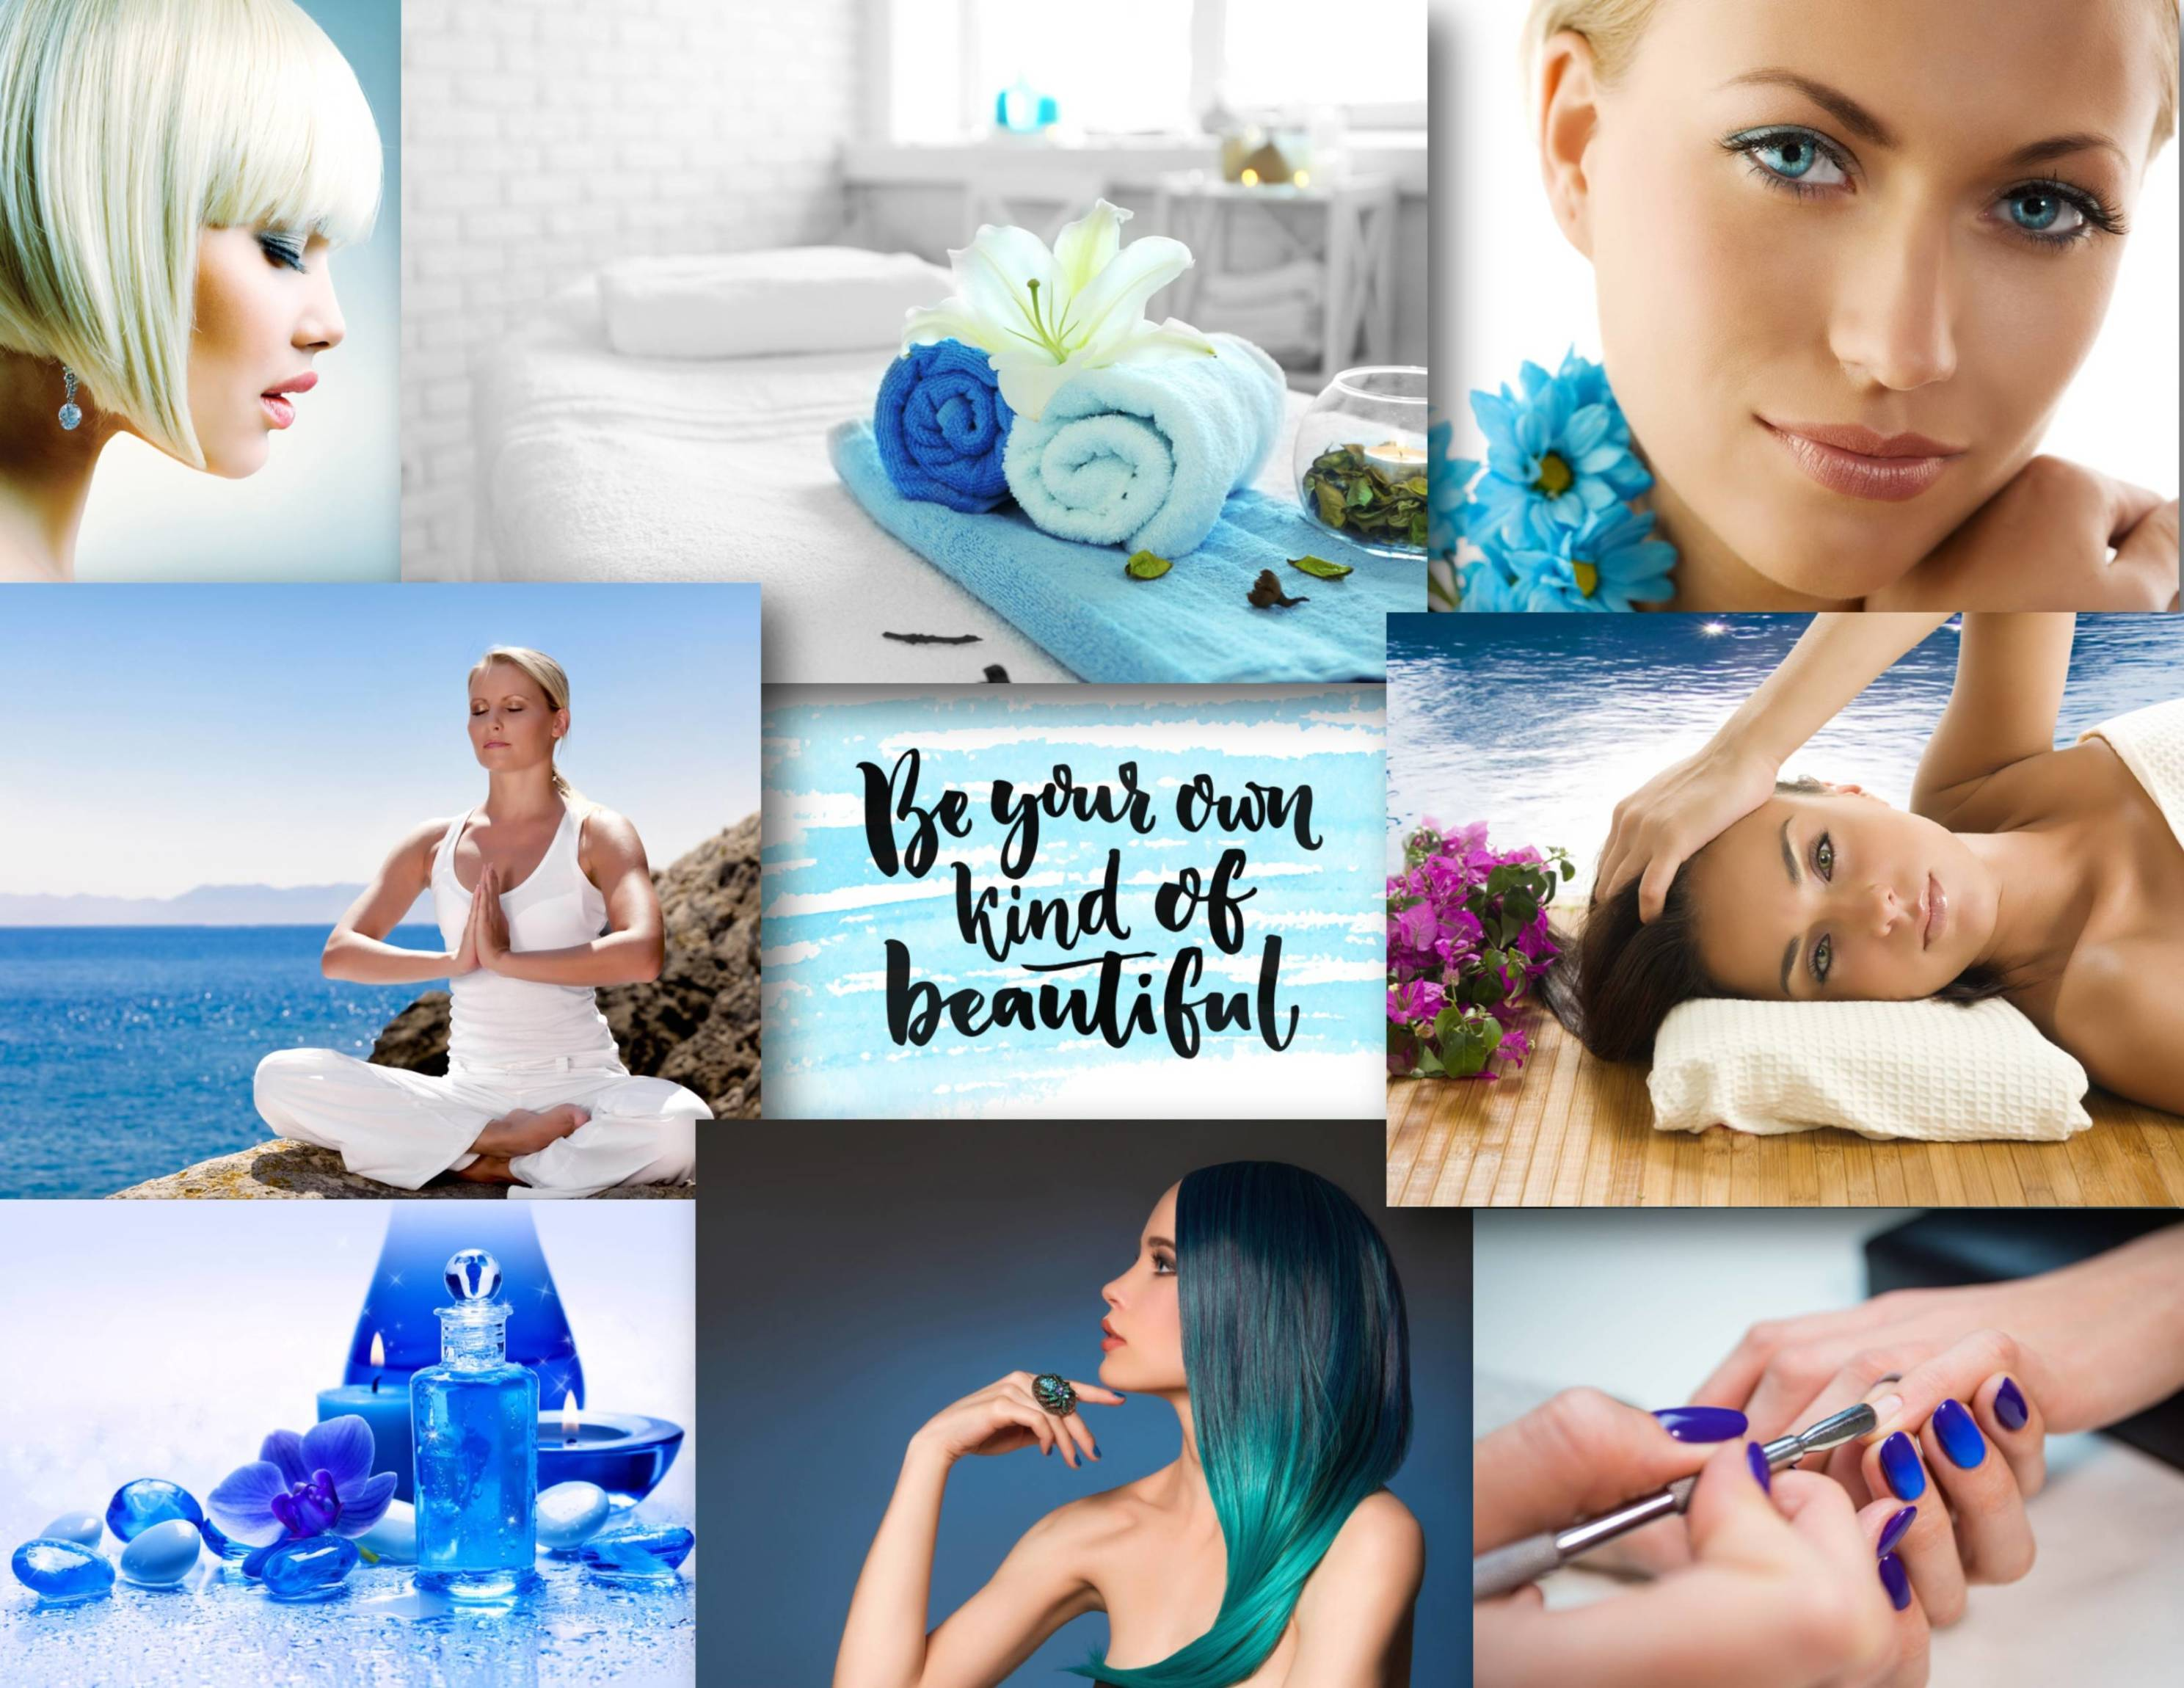 Skin Renewal Systems Spa and Salon - where you be your own kind of beautiful